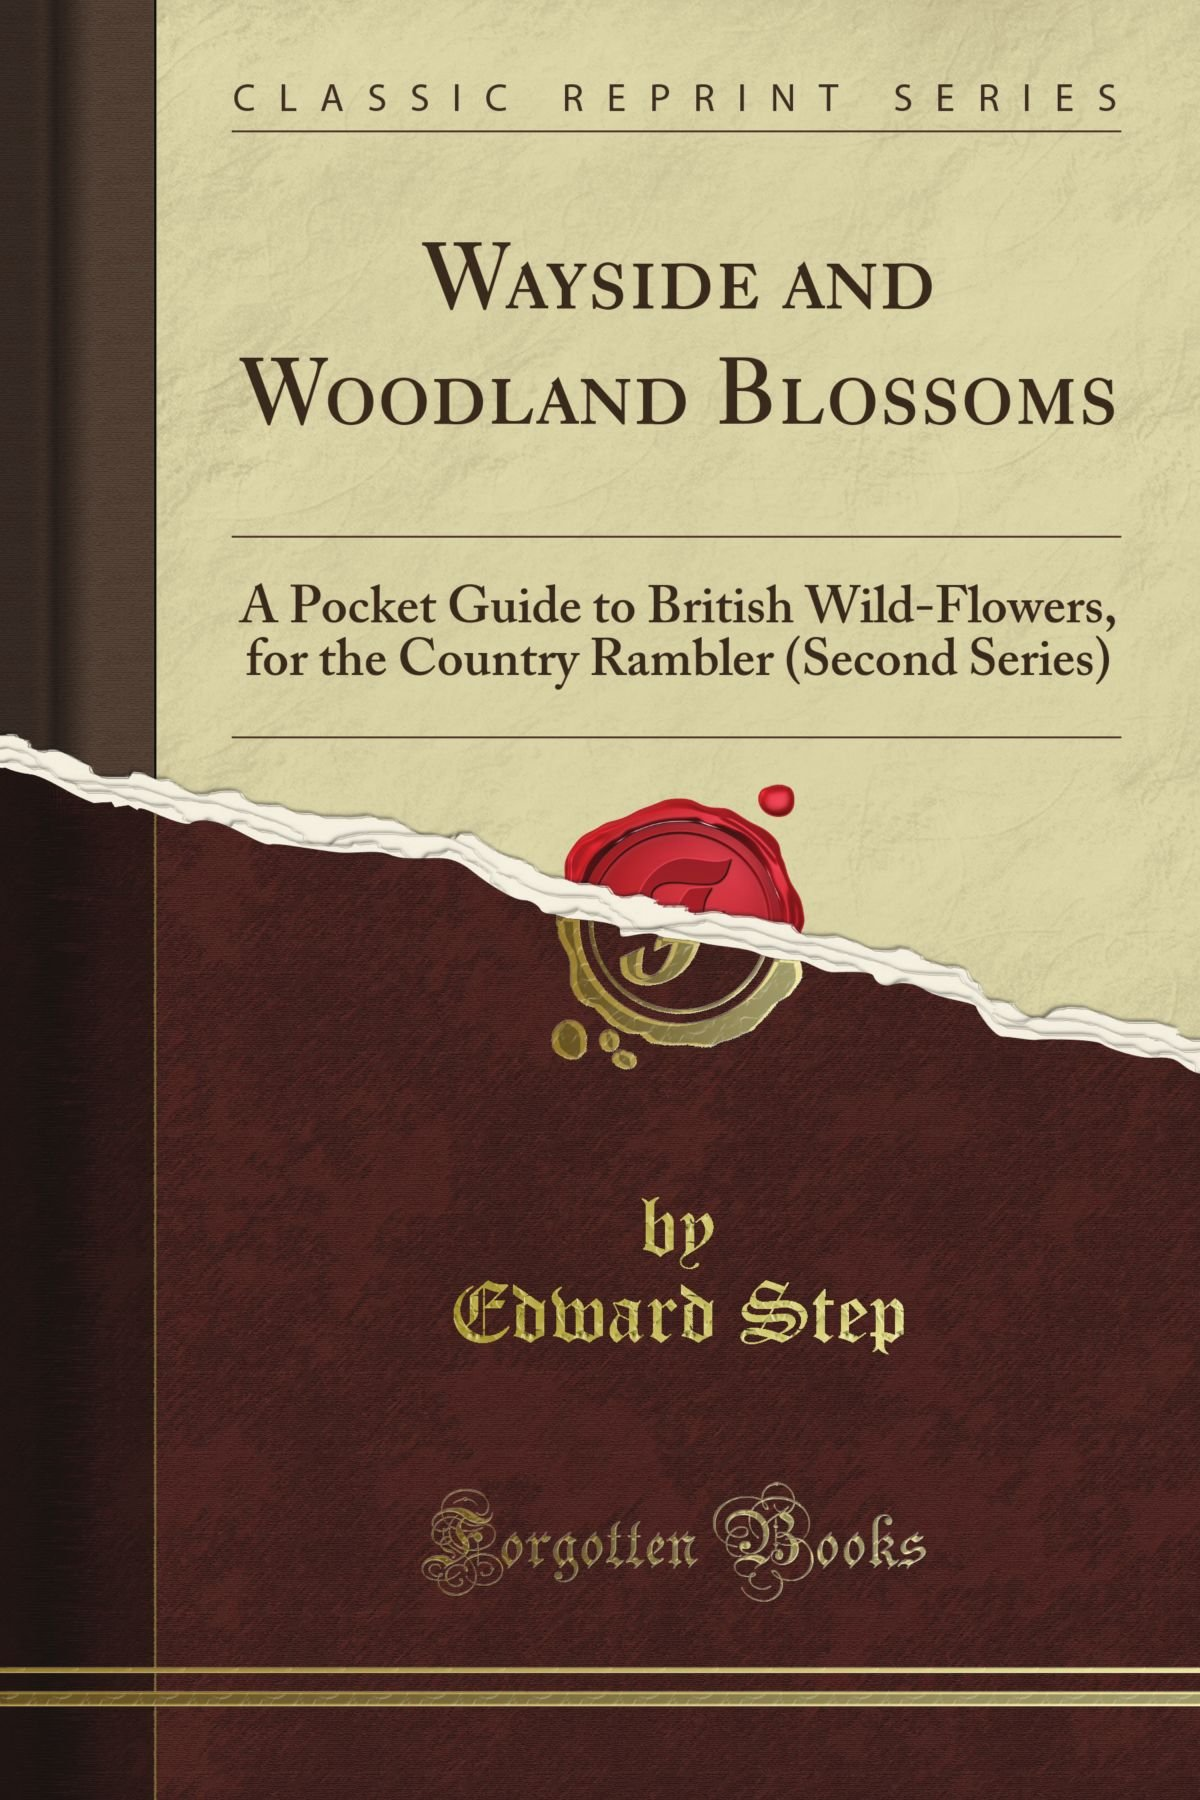 Wayside and Woodland Blossoms: A Pocket Guide to British Wild-Flowers, for the Country Rambler (Second Series) (Classic Reprint) pdf